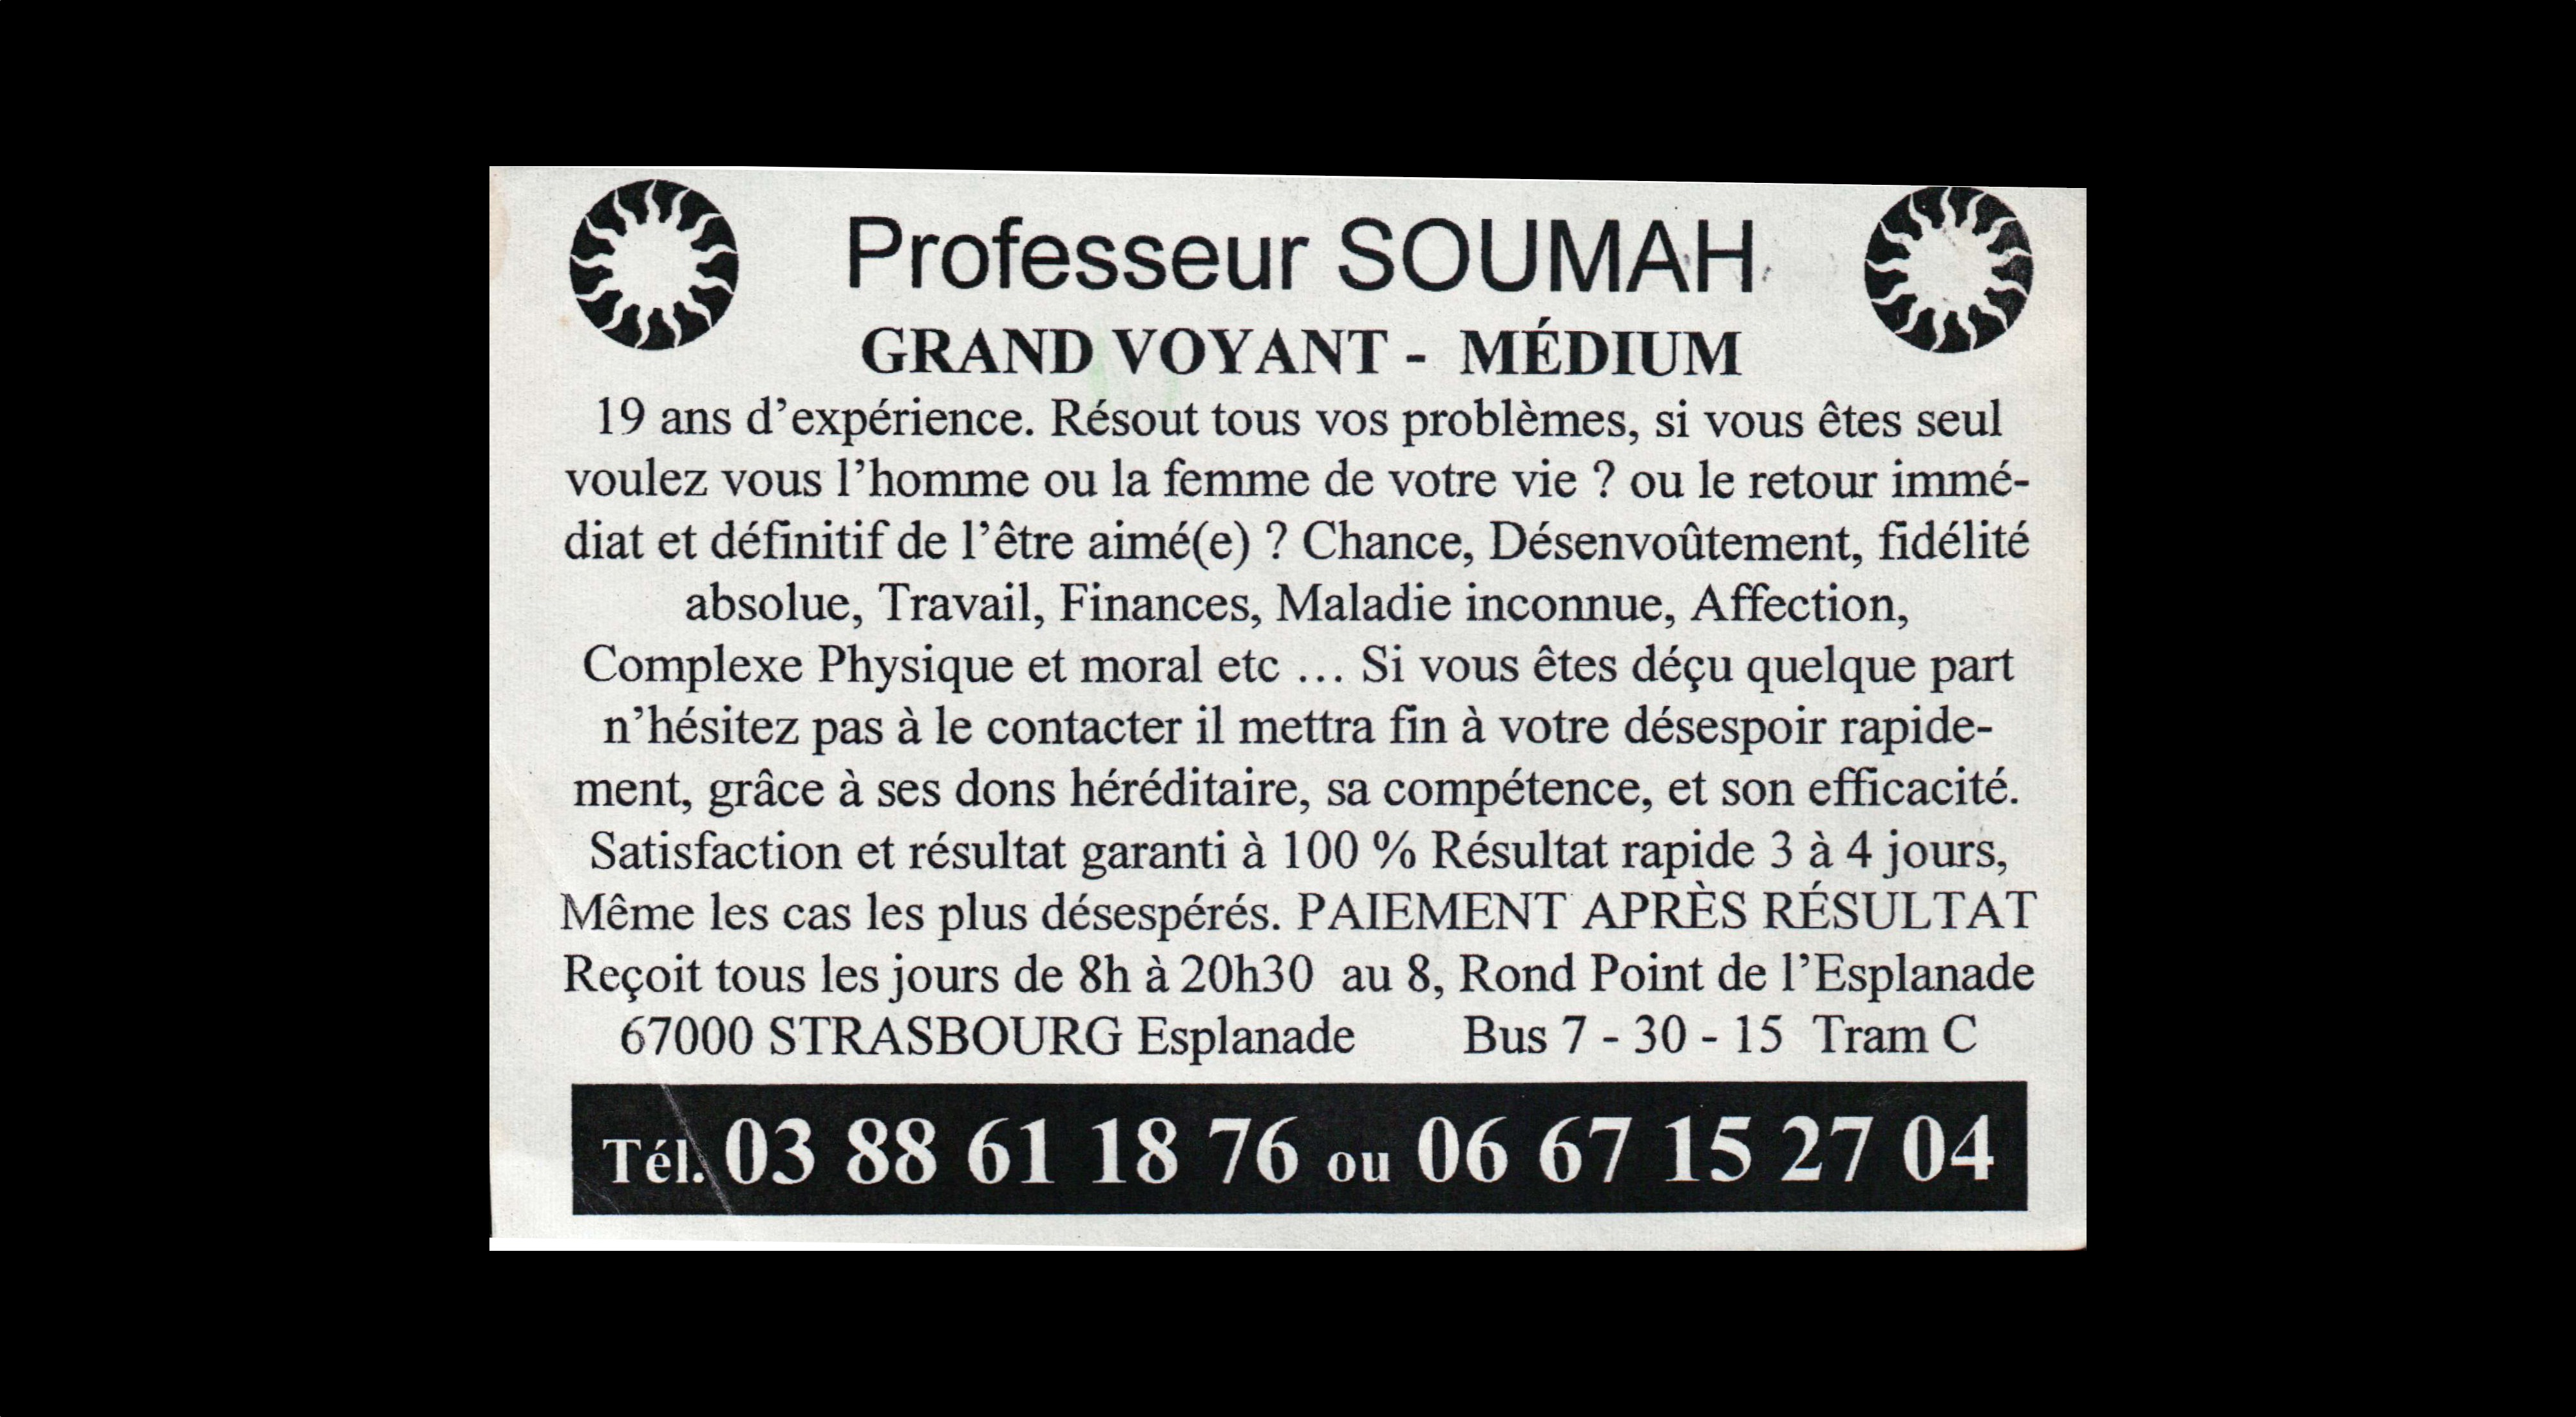 card of Proffeseur Soumah